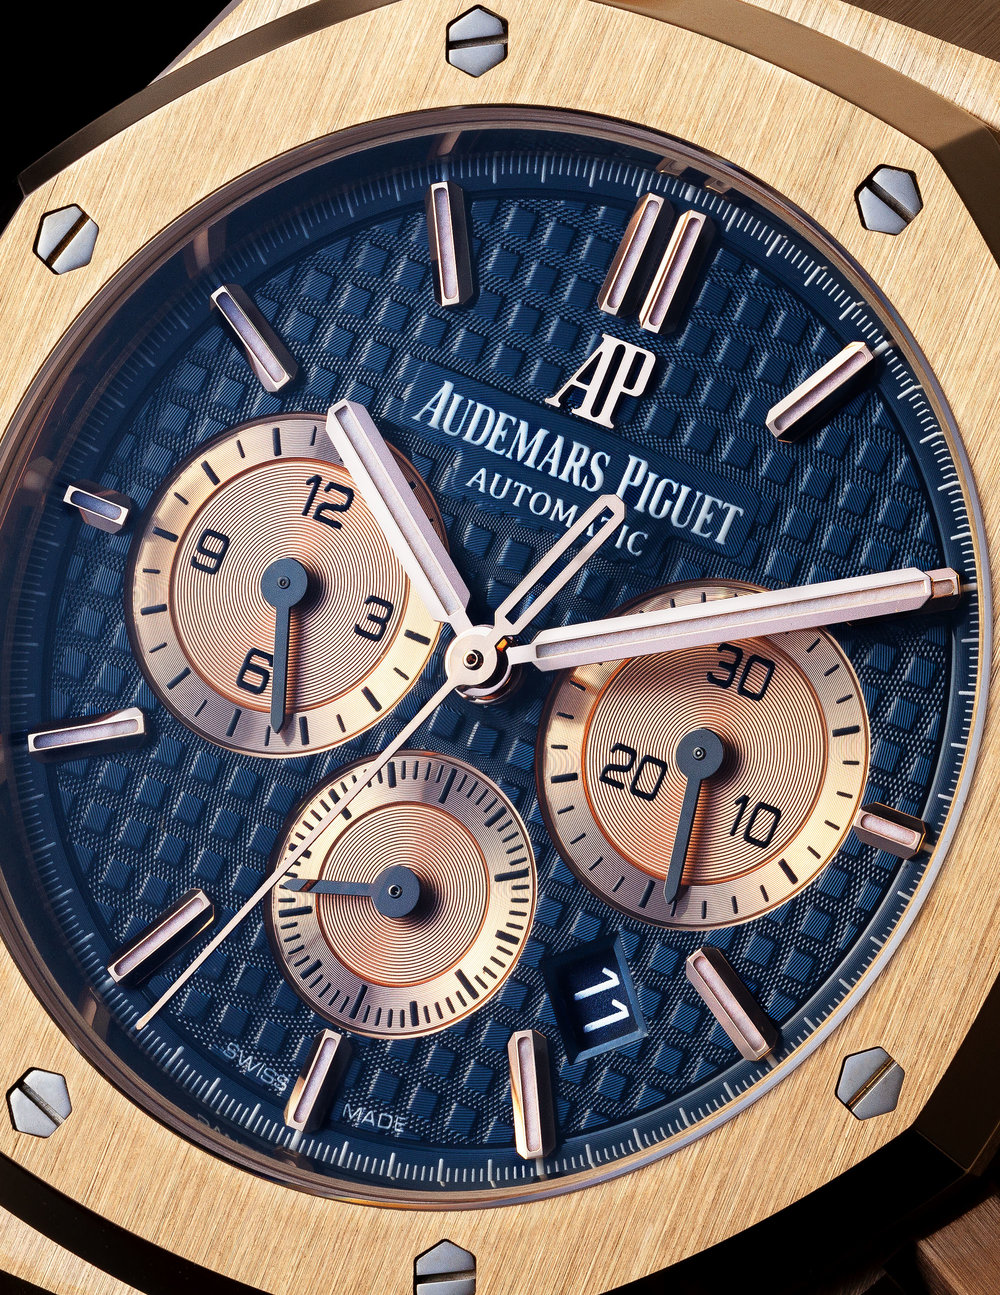 kashtan-ap-audemars-piguet-rose-gold-and-blue-face-royal-oak-2.jpg